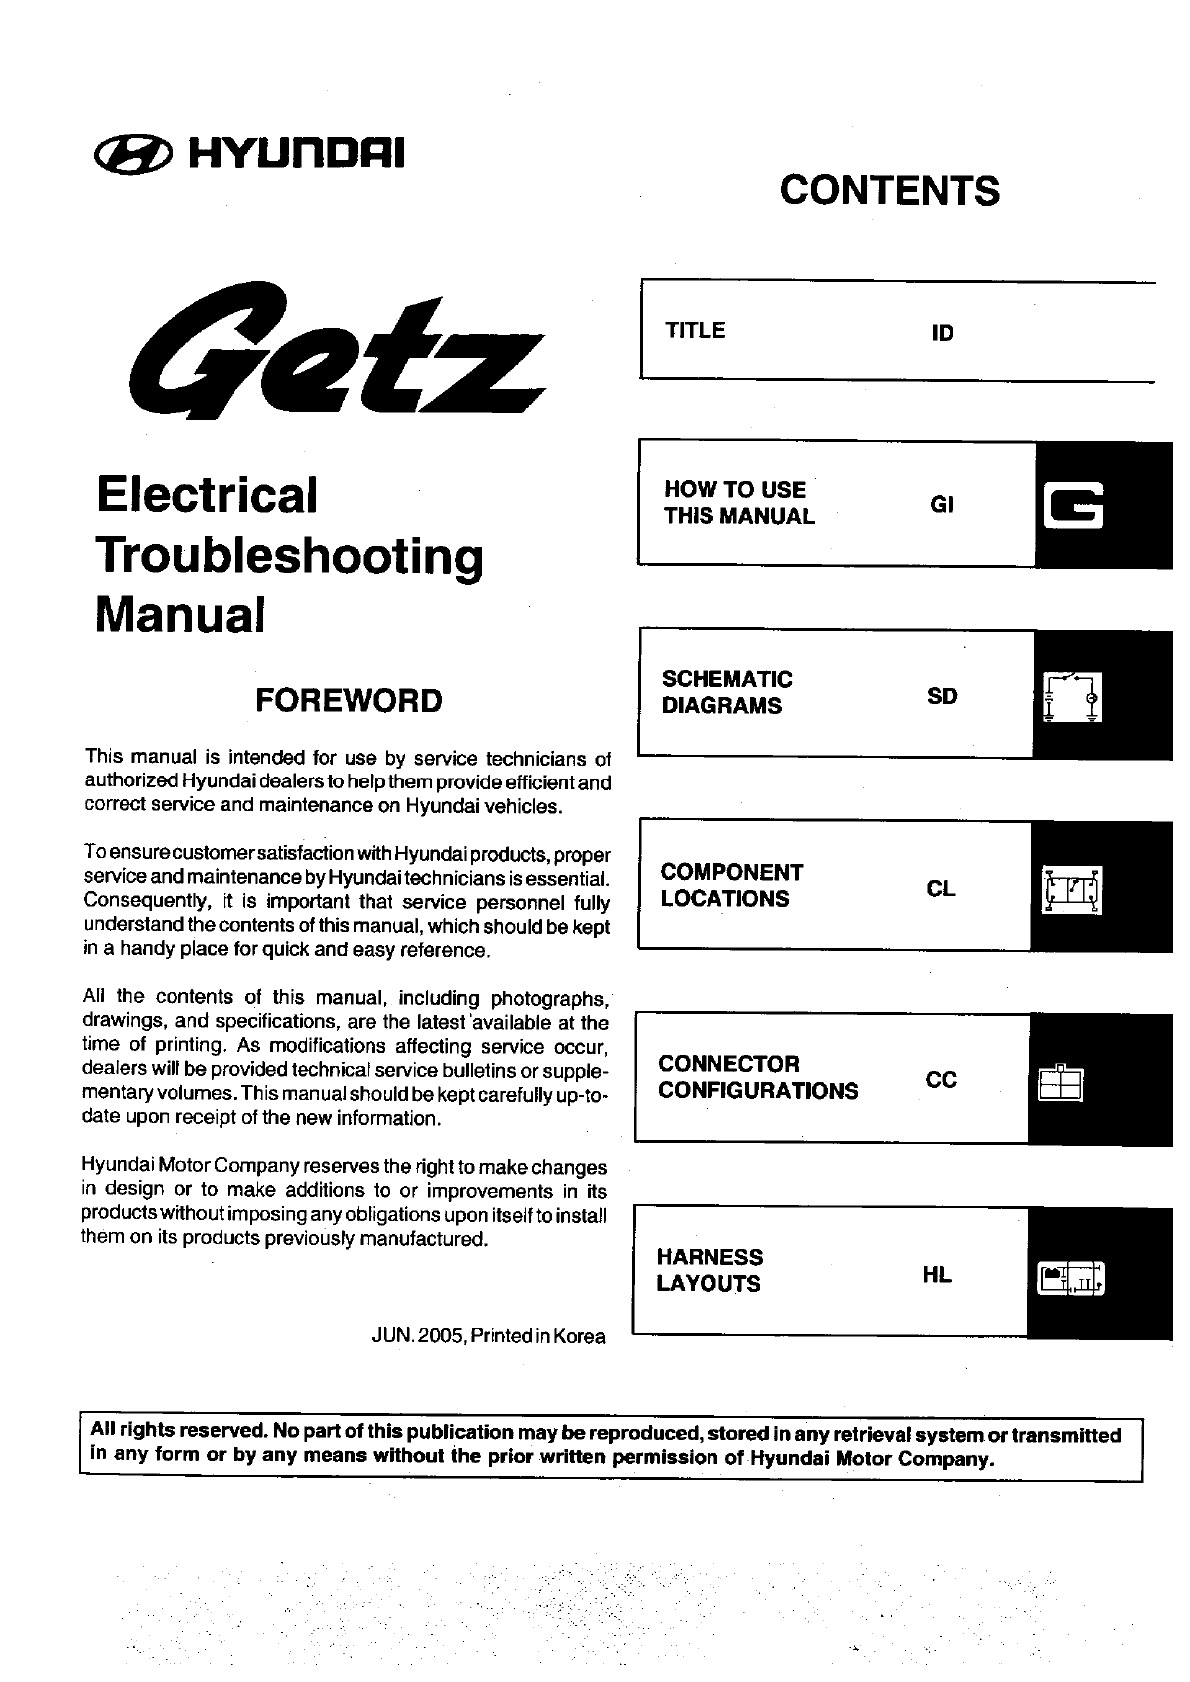 hyundai getz 2005 workshop manual etm pdf hyundai matrix workshop manual hyundai matrix service manual pdf